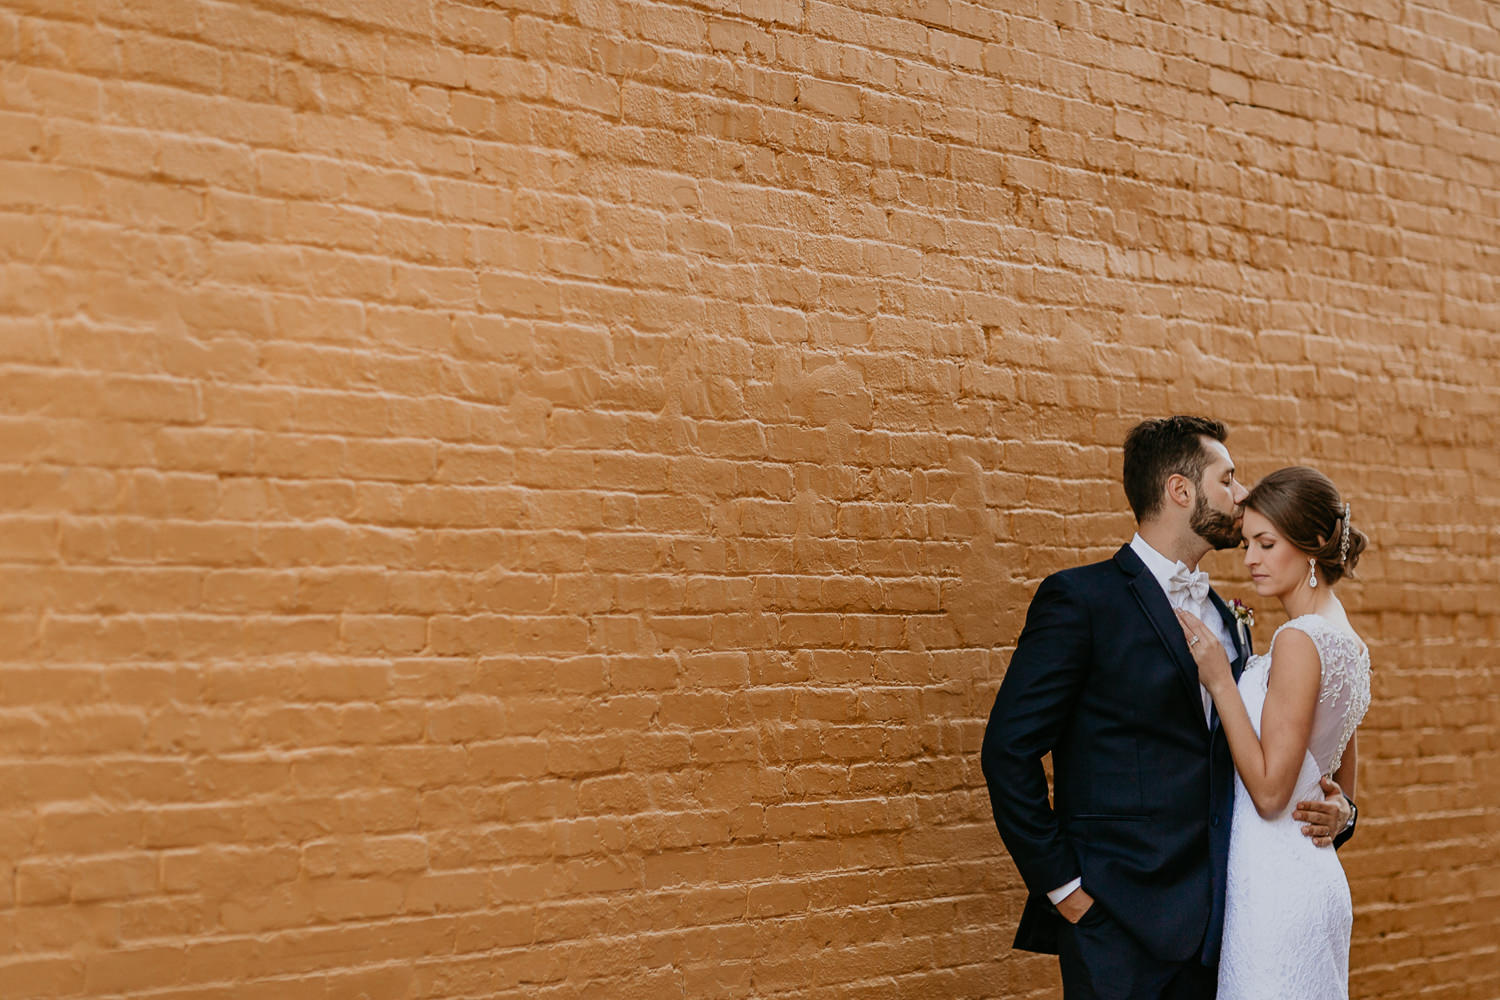 groom kissing bride's forehead in front of yellow brick wall